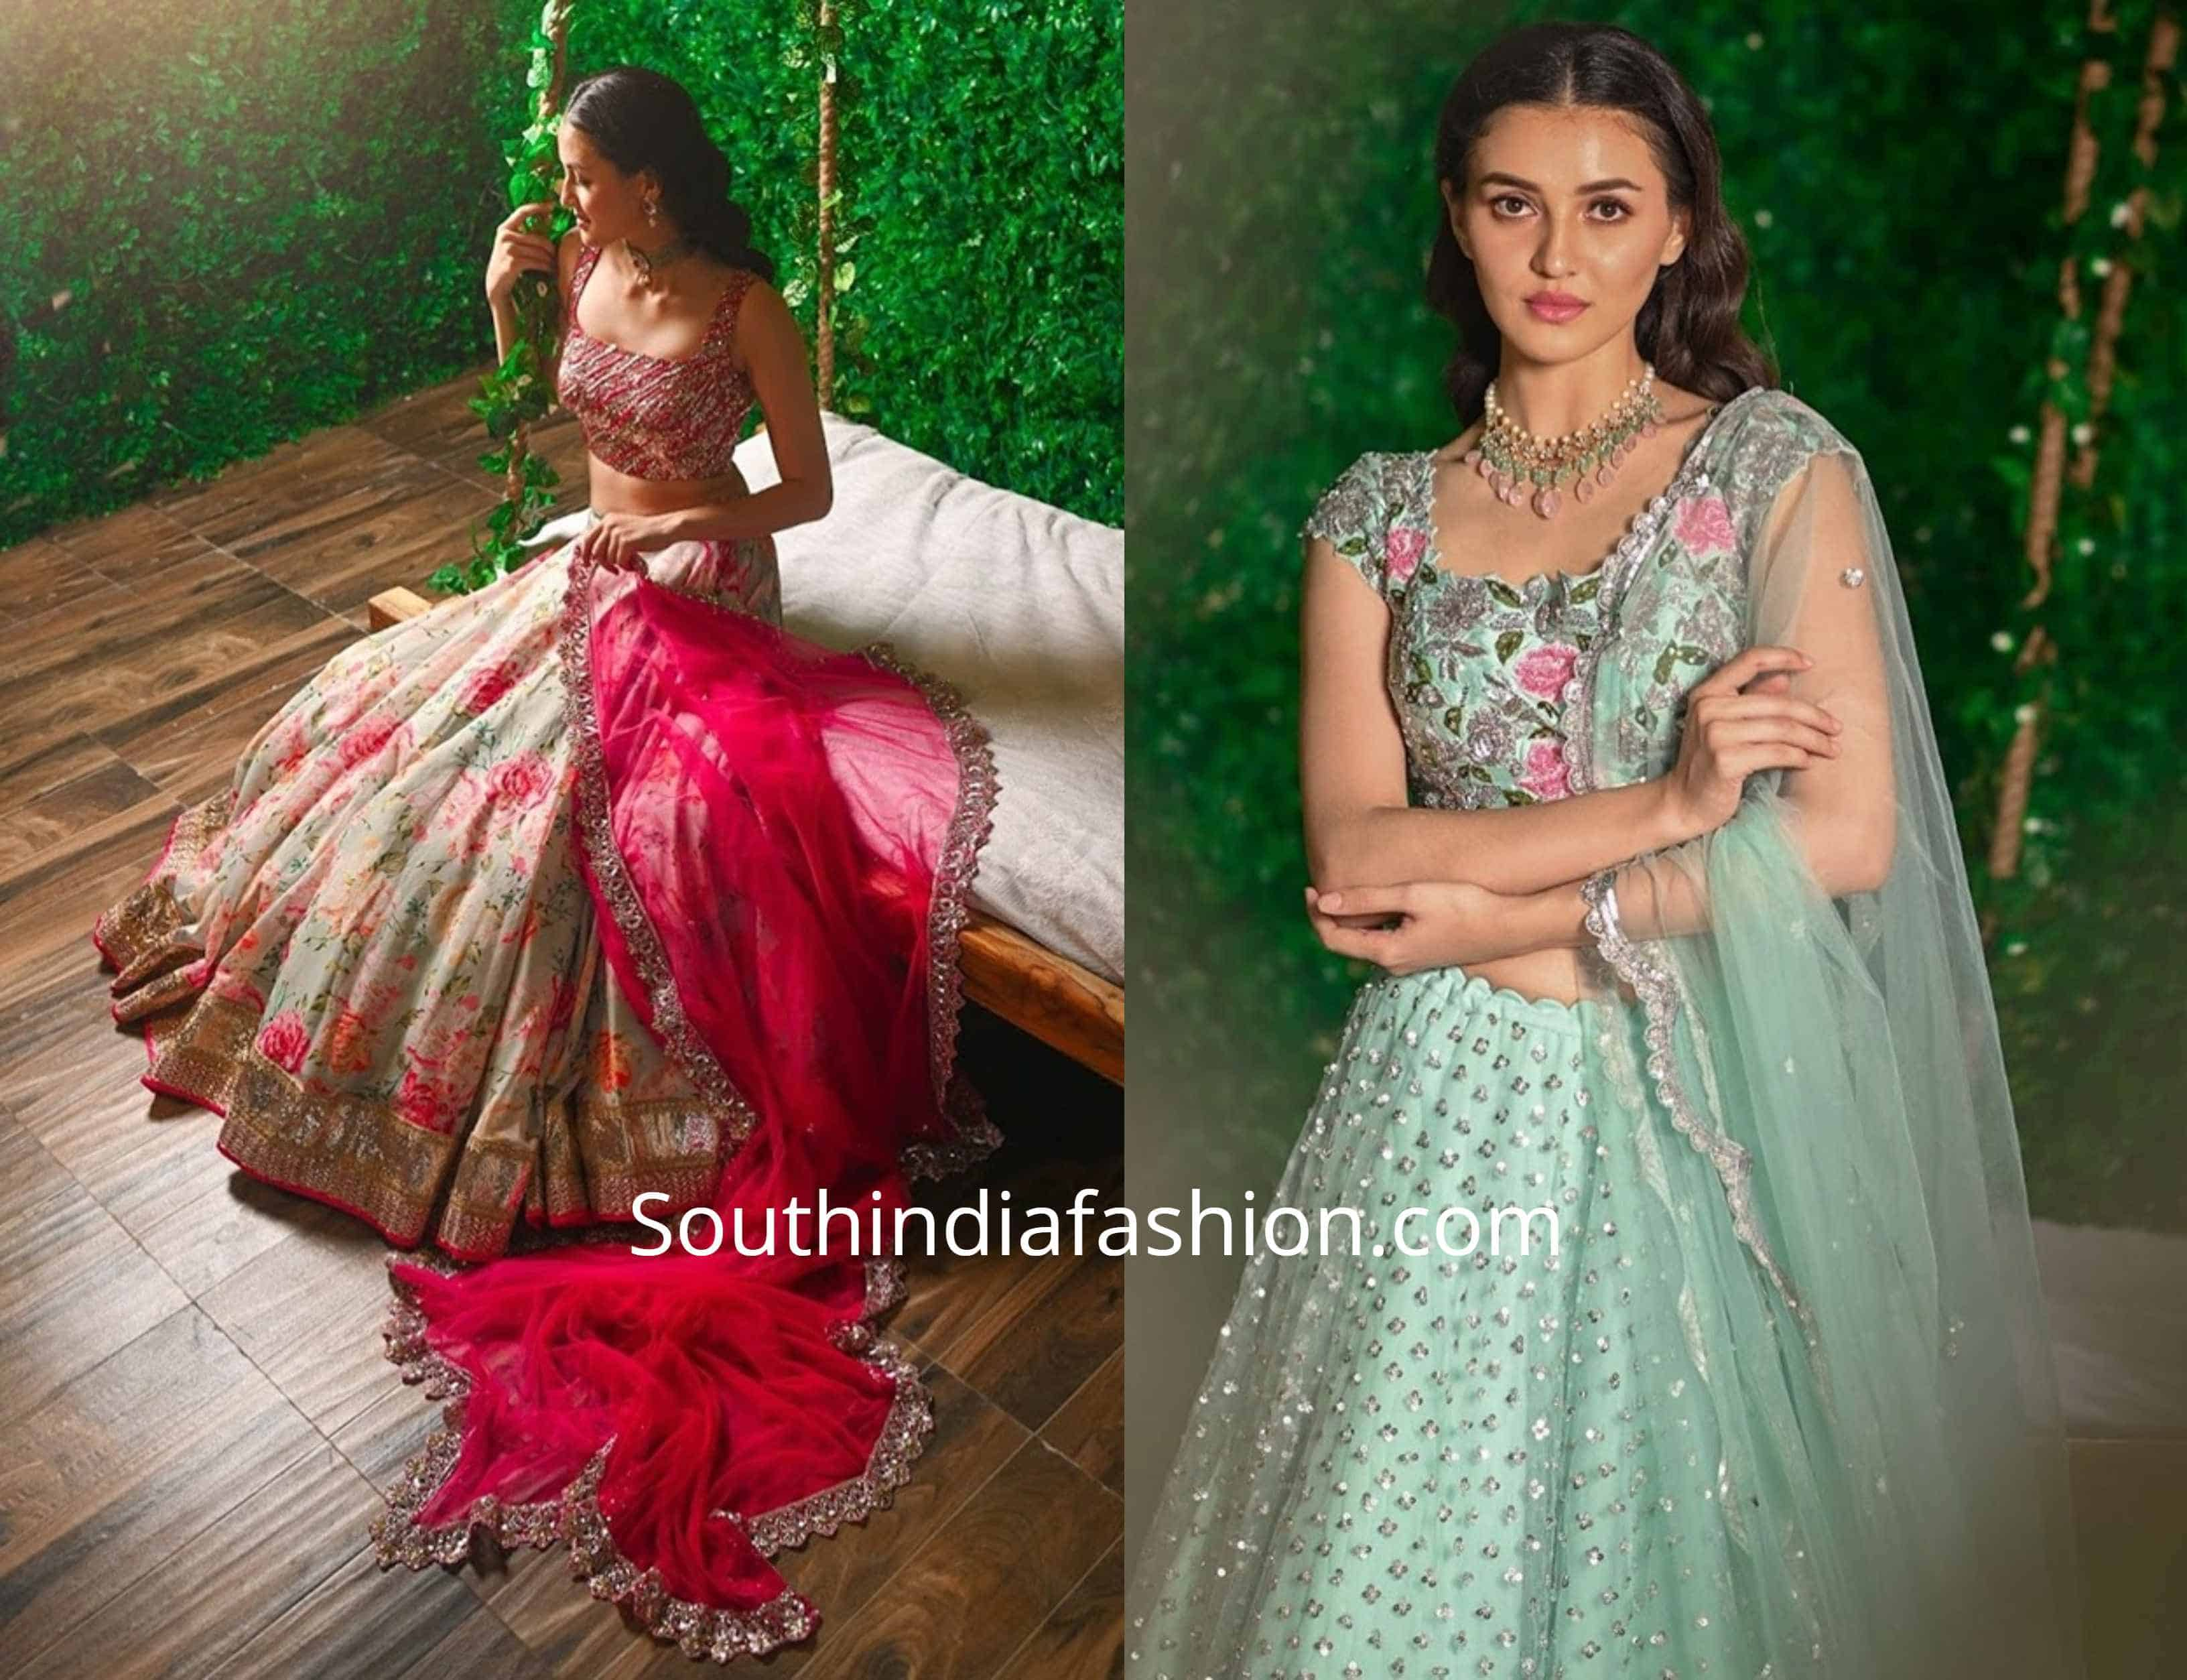 Geethika Kanumilli The Garden Soiree Collection (1)